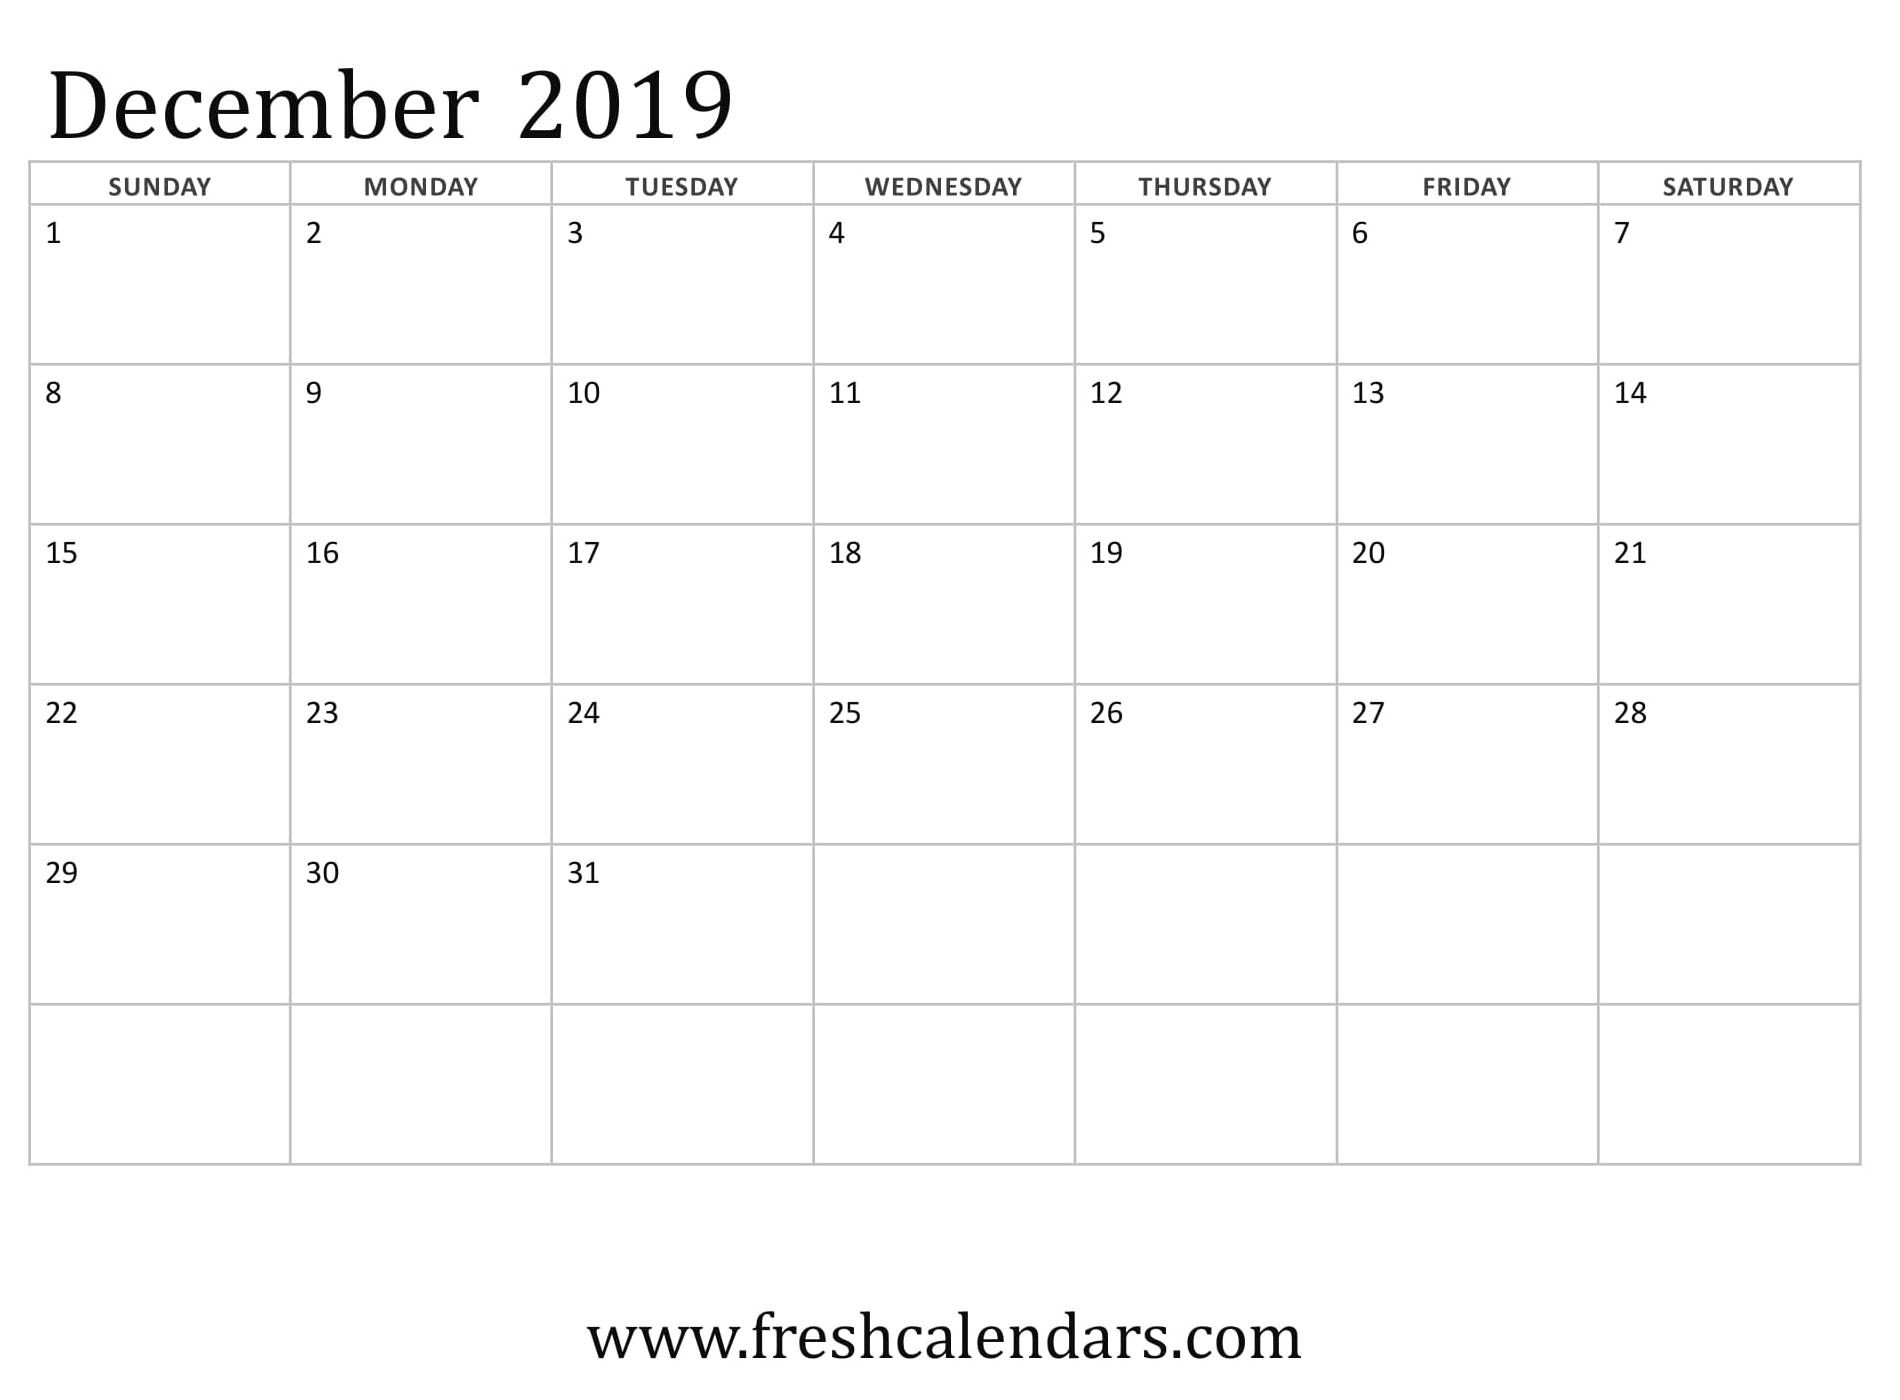 December 2019 Calendar Printable - Fresh Calendars Dowload